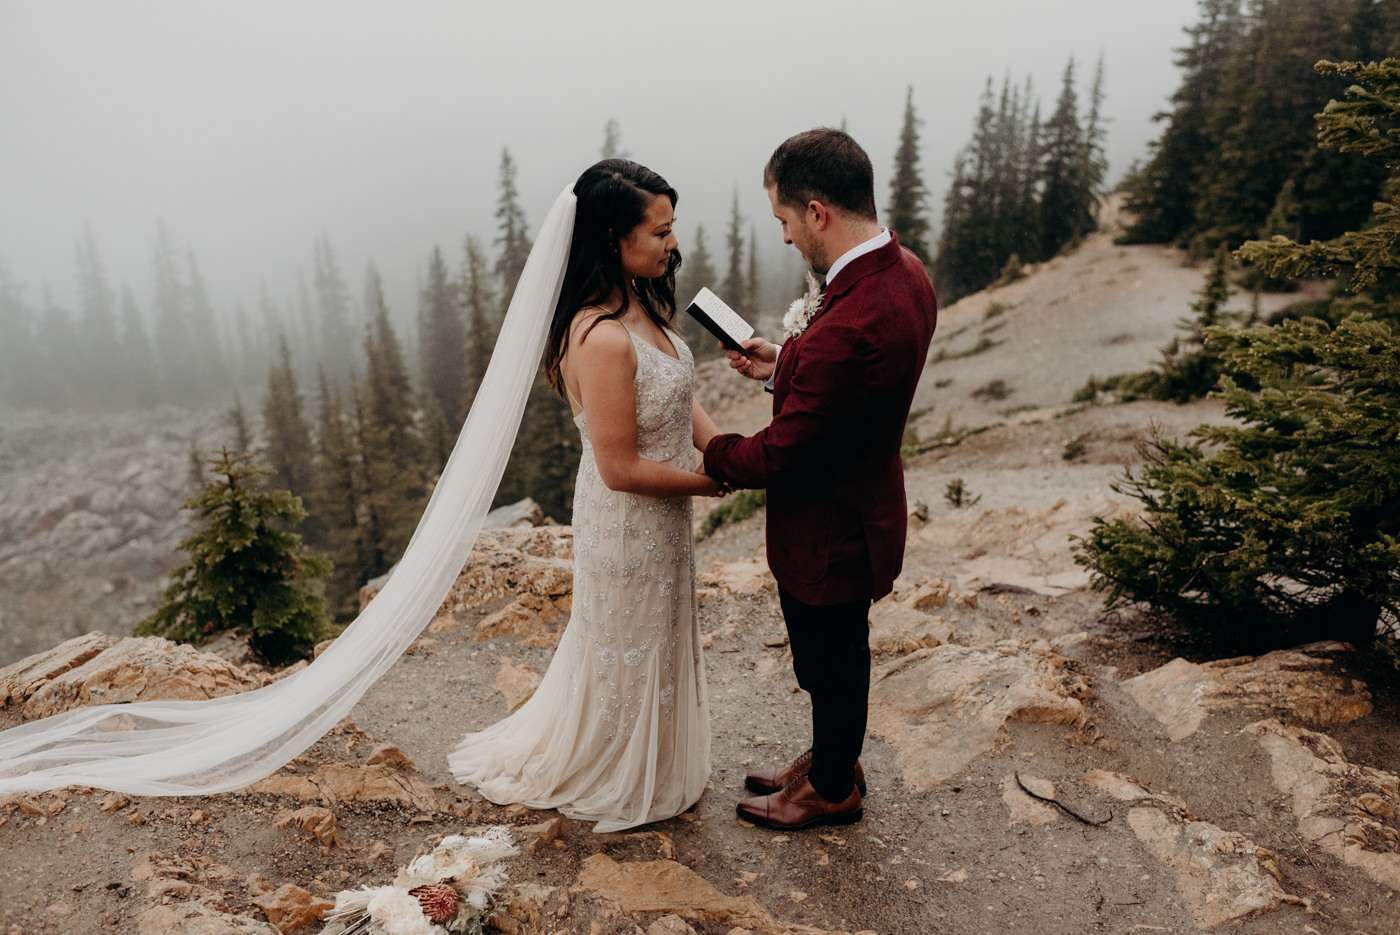 groom reads vows to bride on a rainy morning in Banff National Park